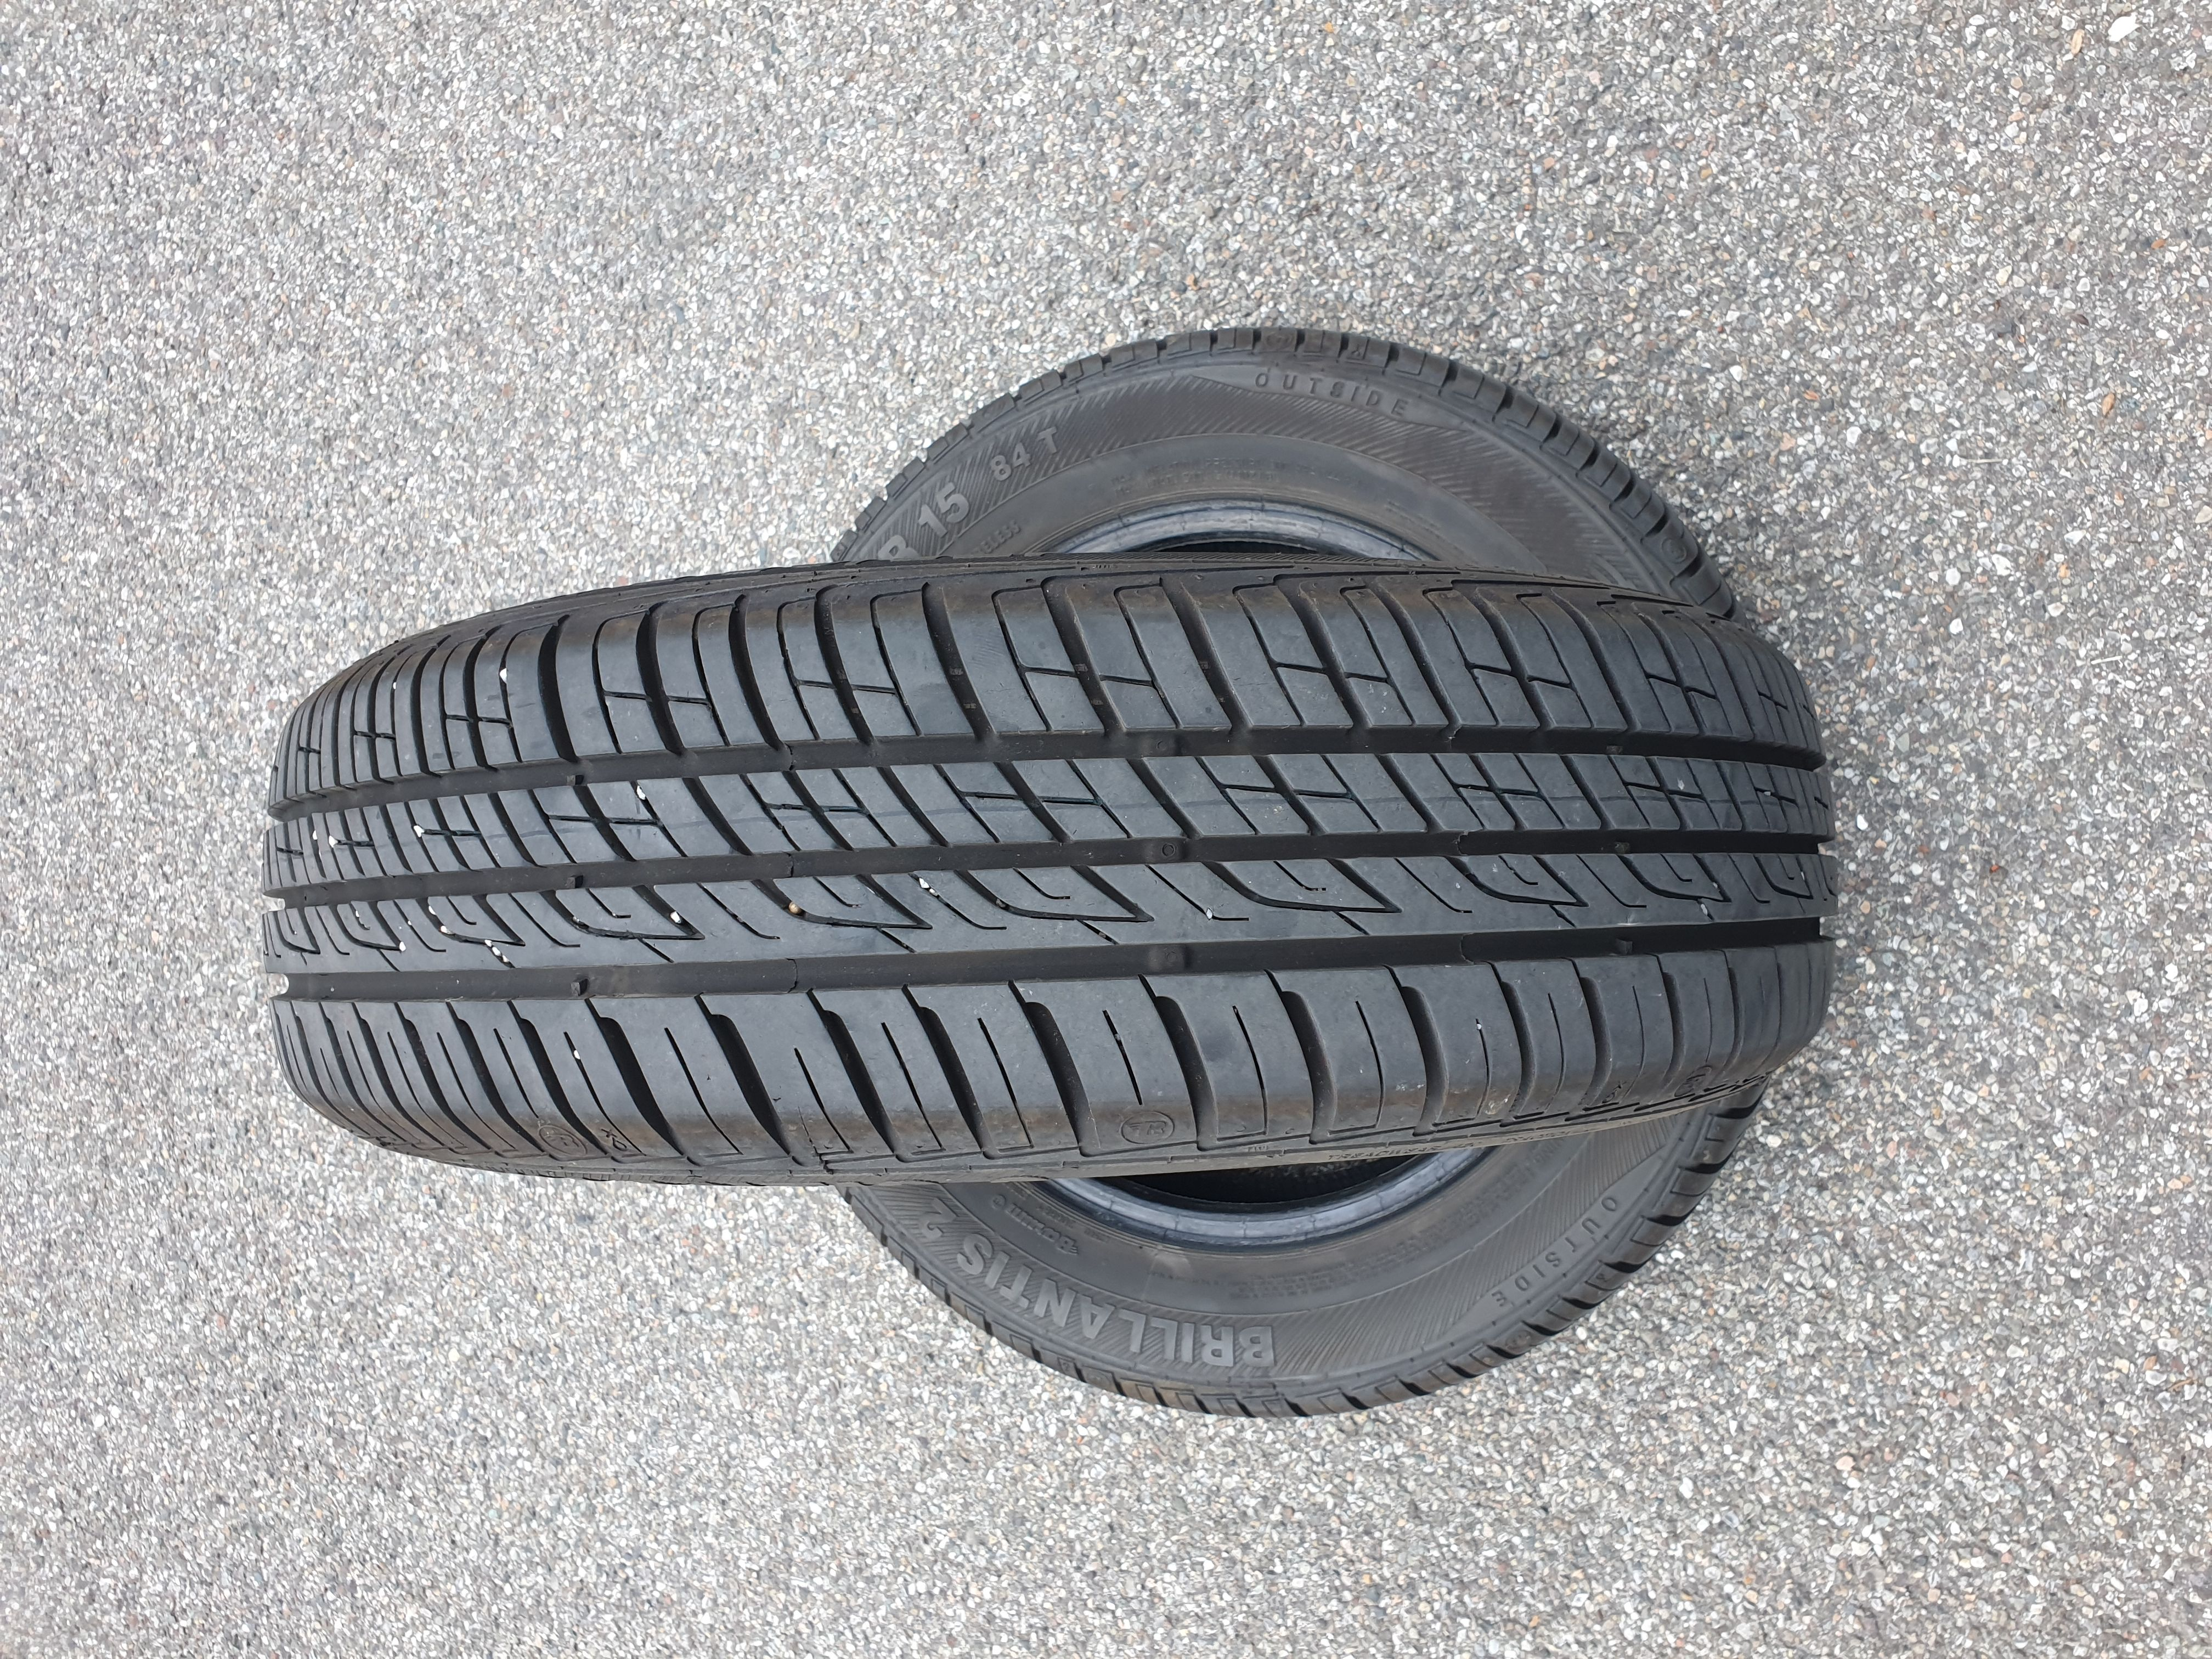 2 Gomme semi nuove